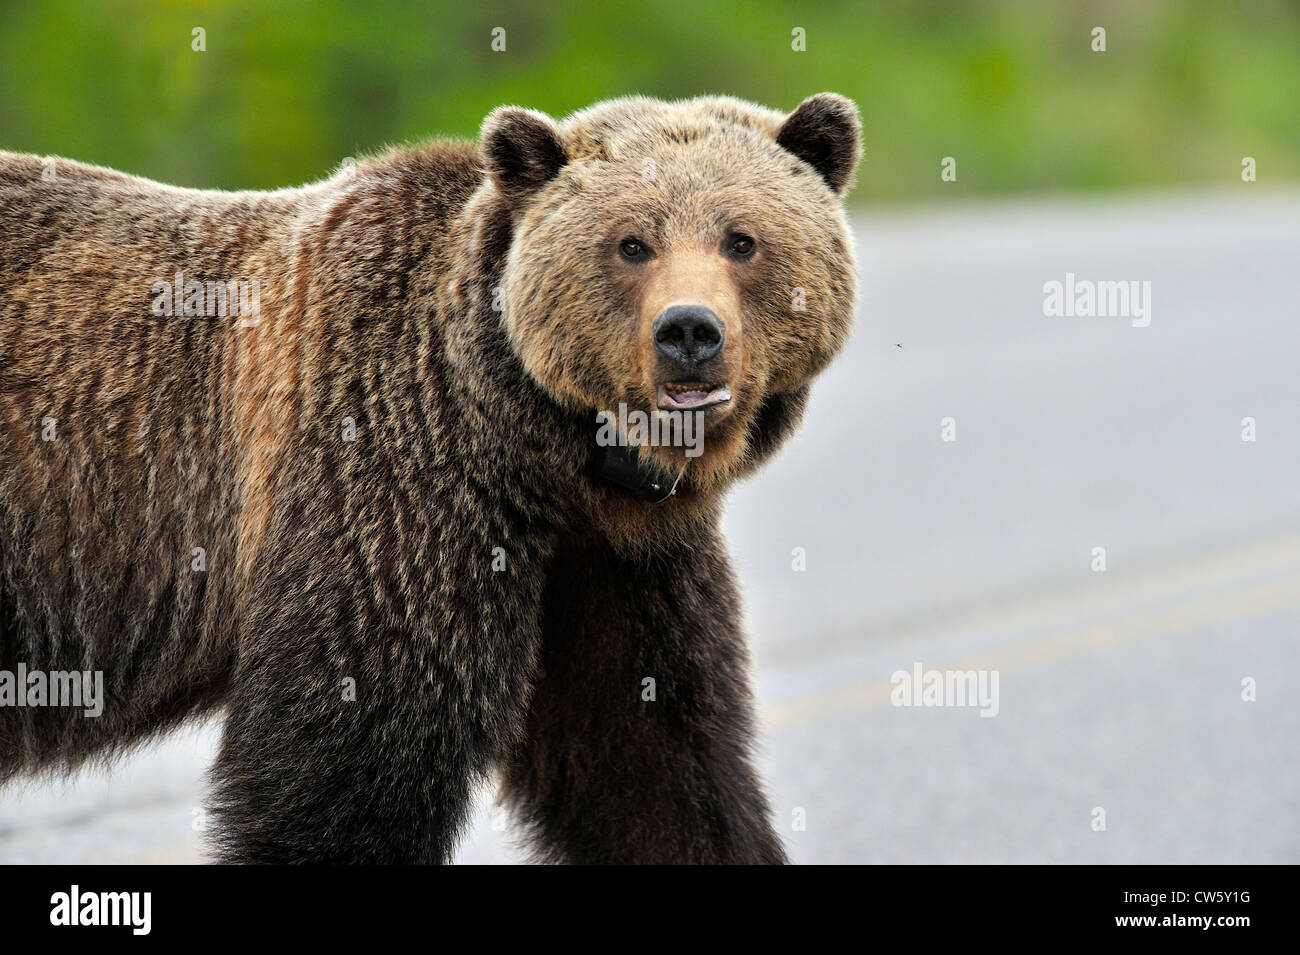 A female grizzly bear portrait - Stock Image